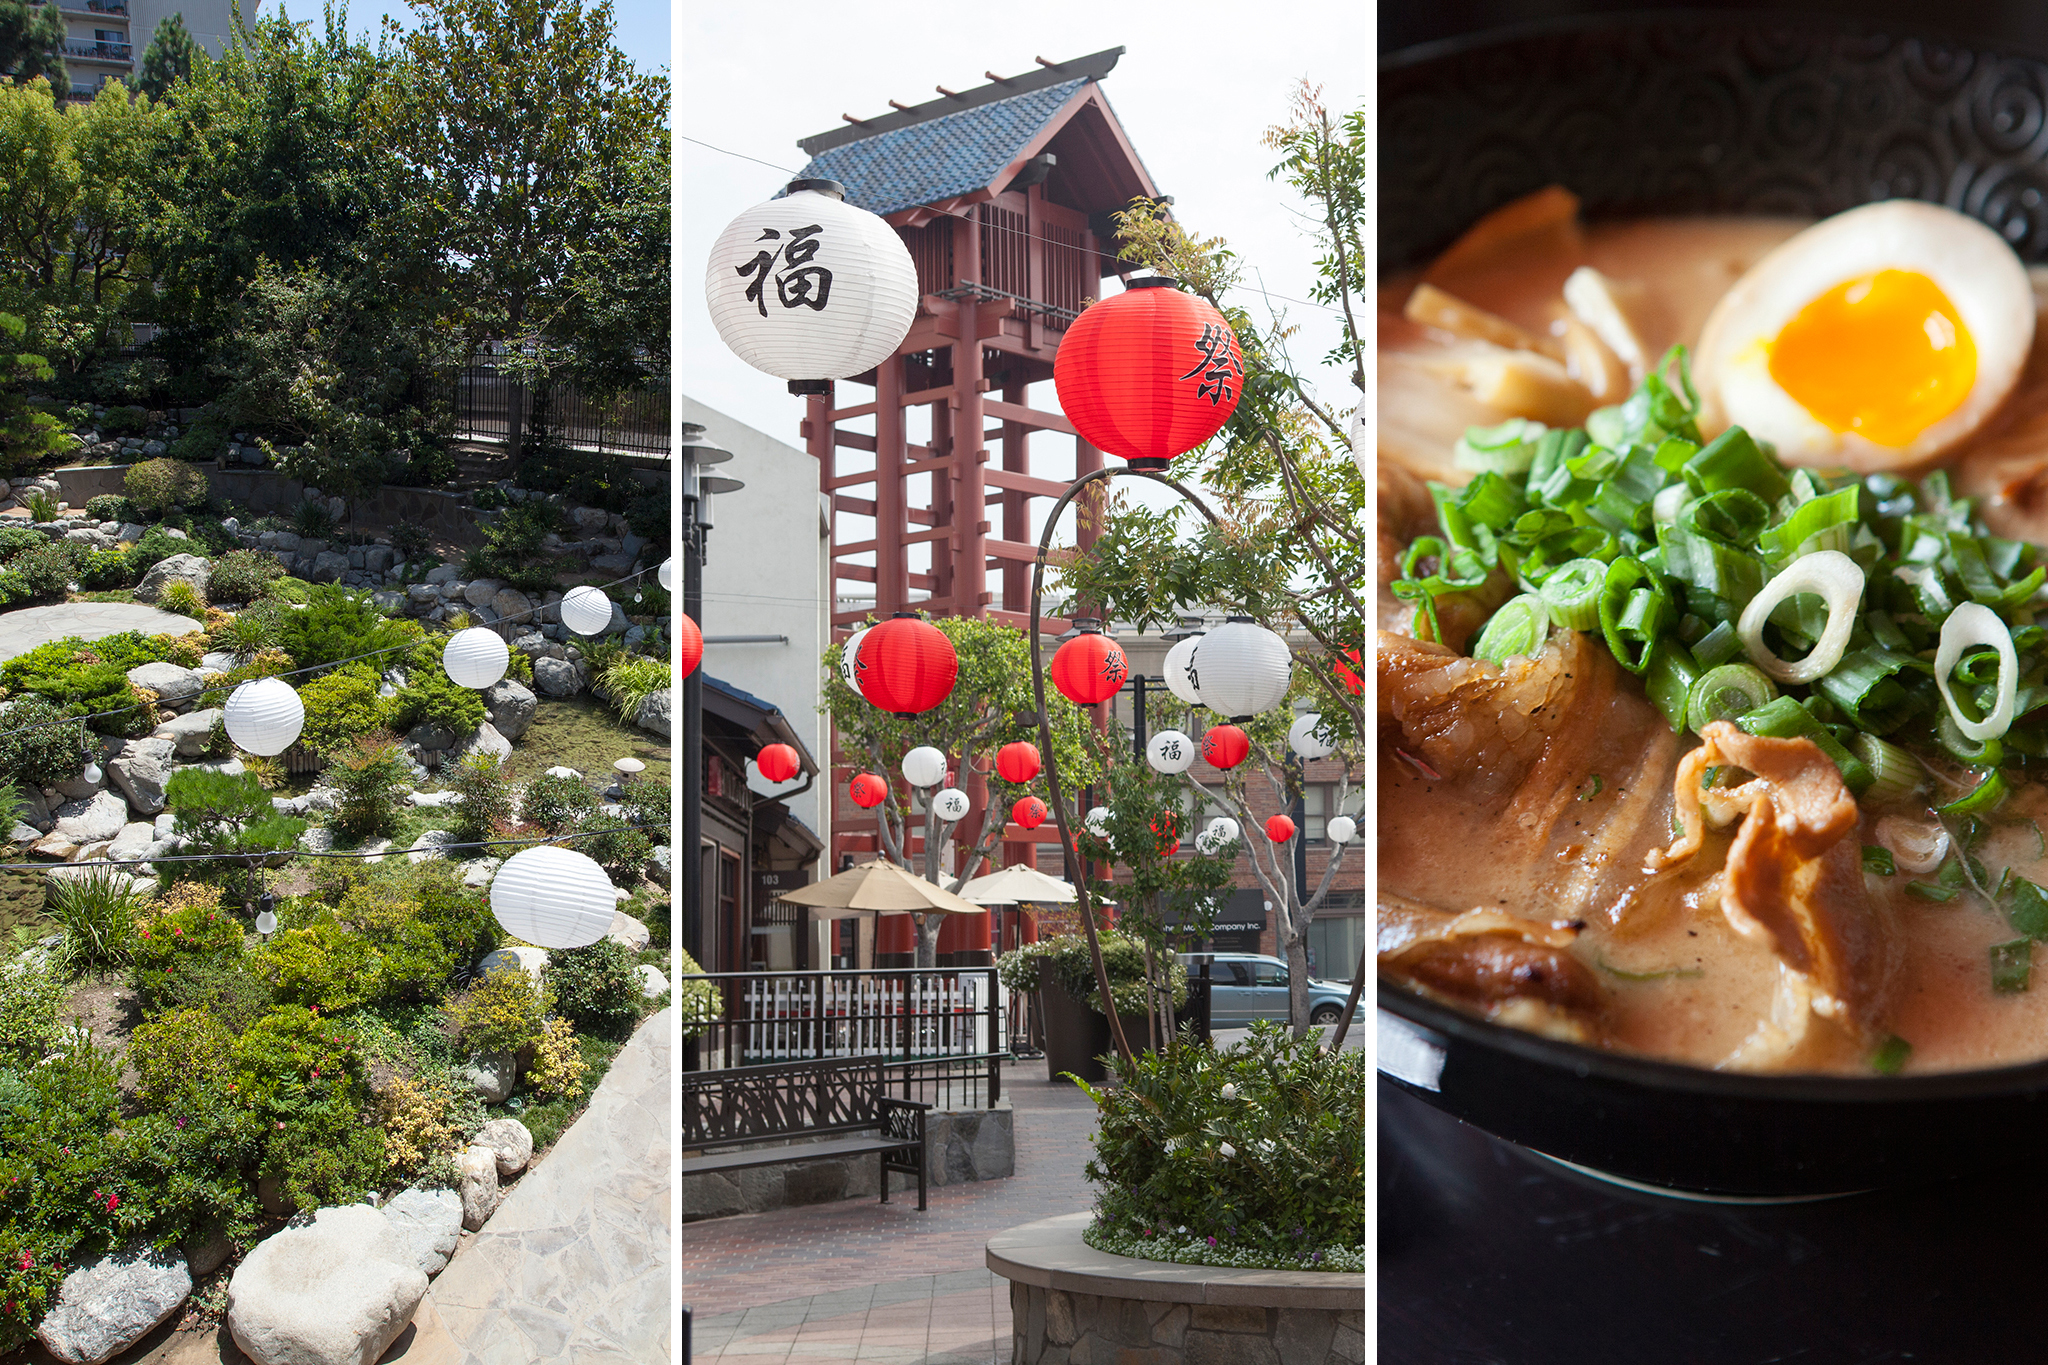 What to eat and see in Little Tokyo